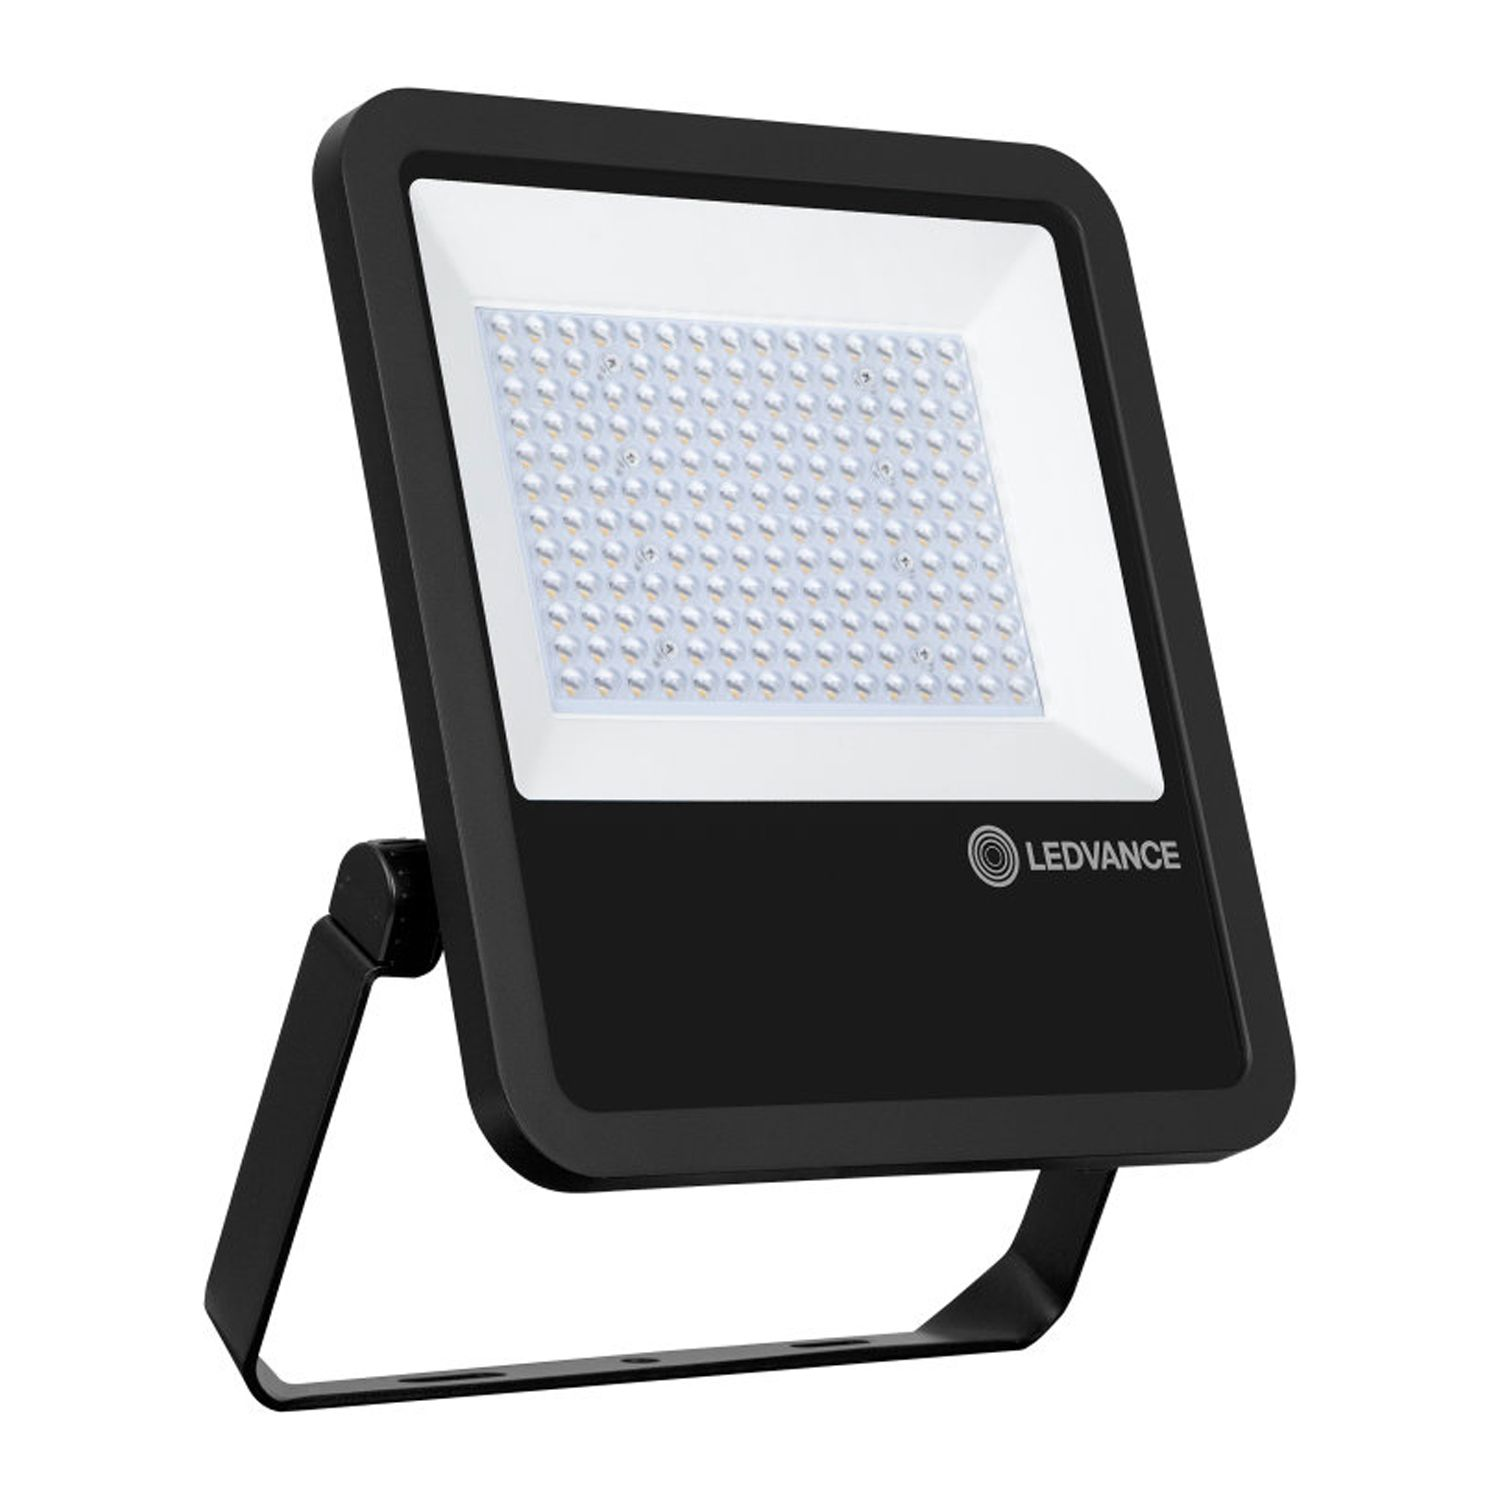 Ledvance LED Floodlight Area 105W 4000K 15000lm IP65 | Cool White